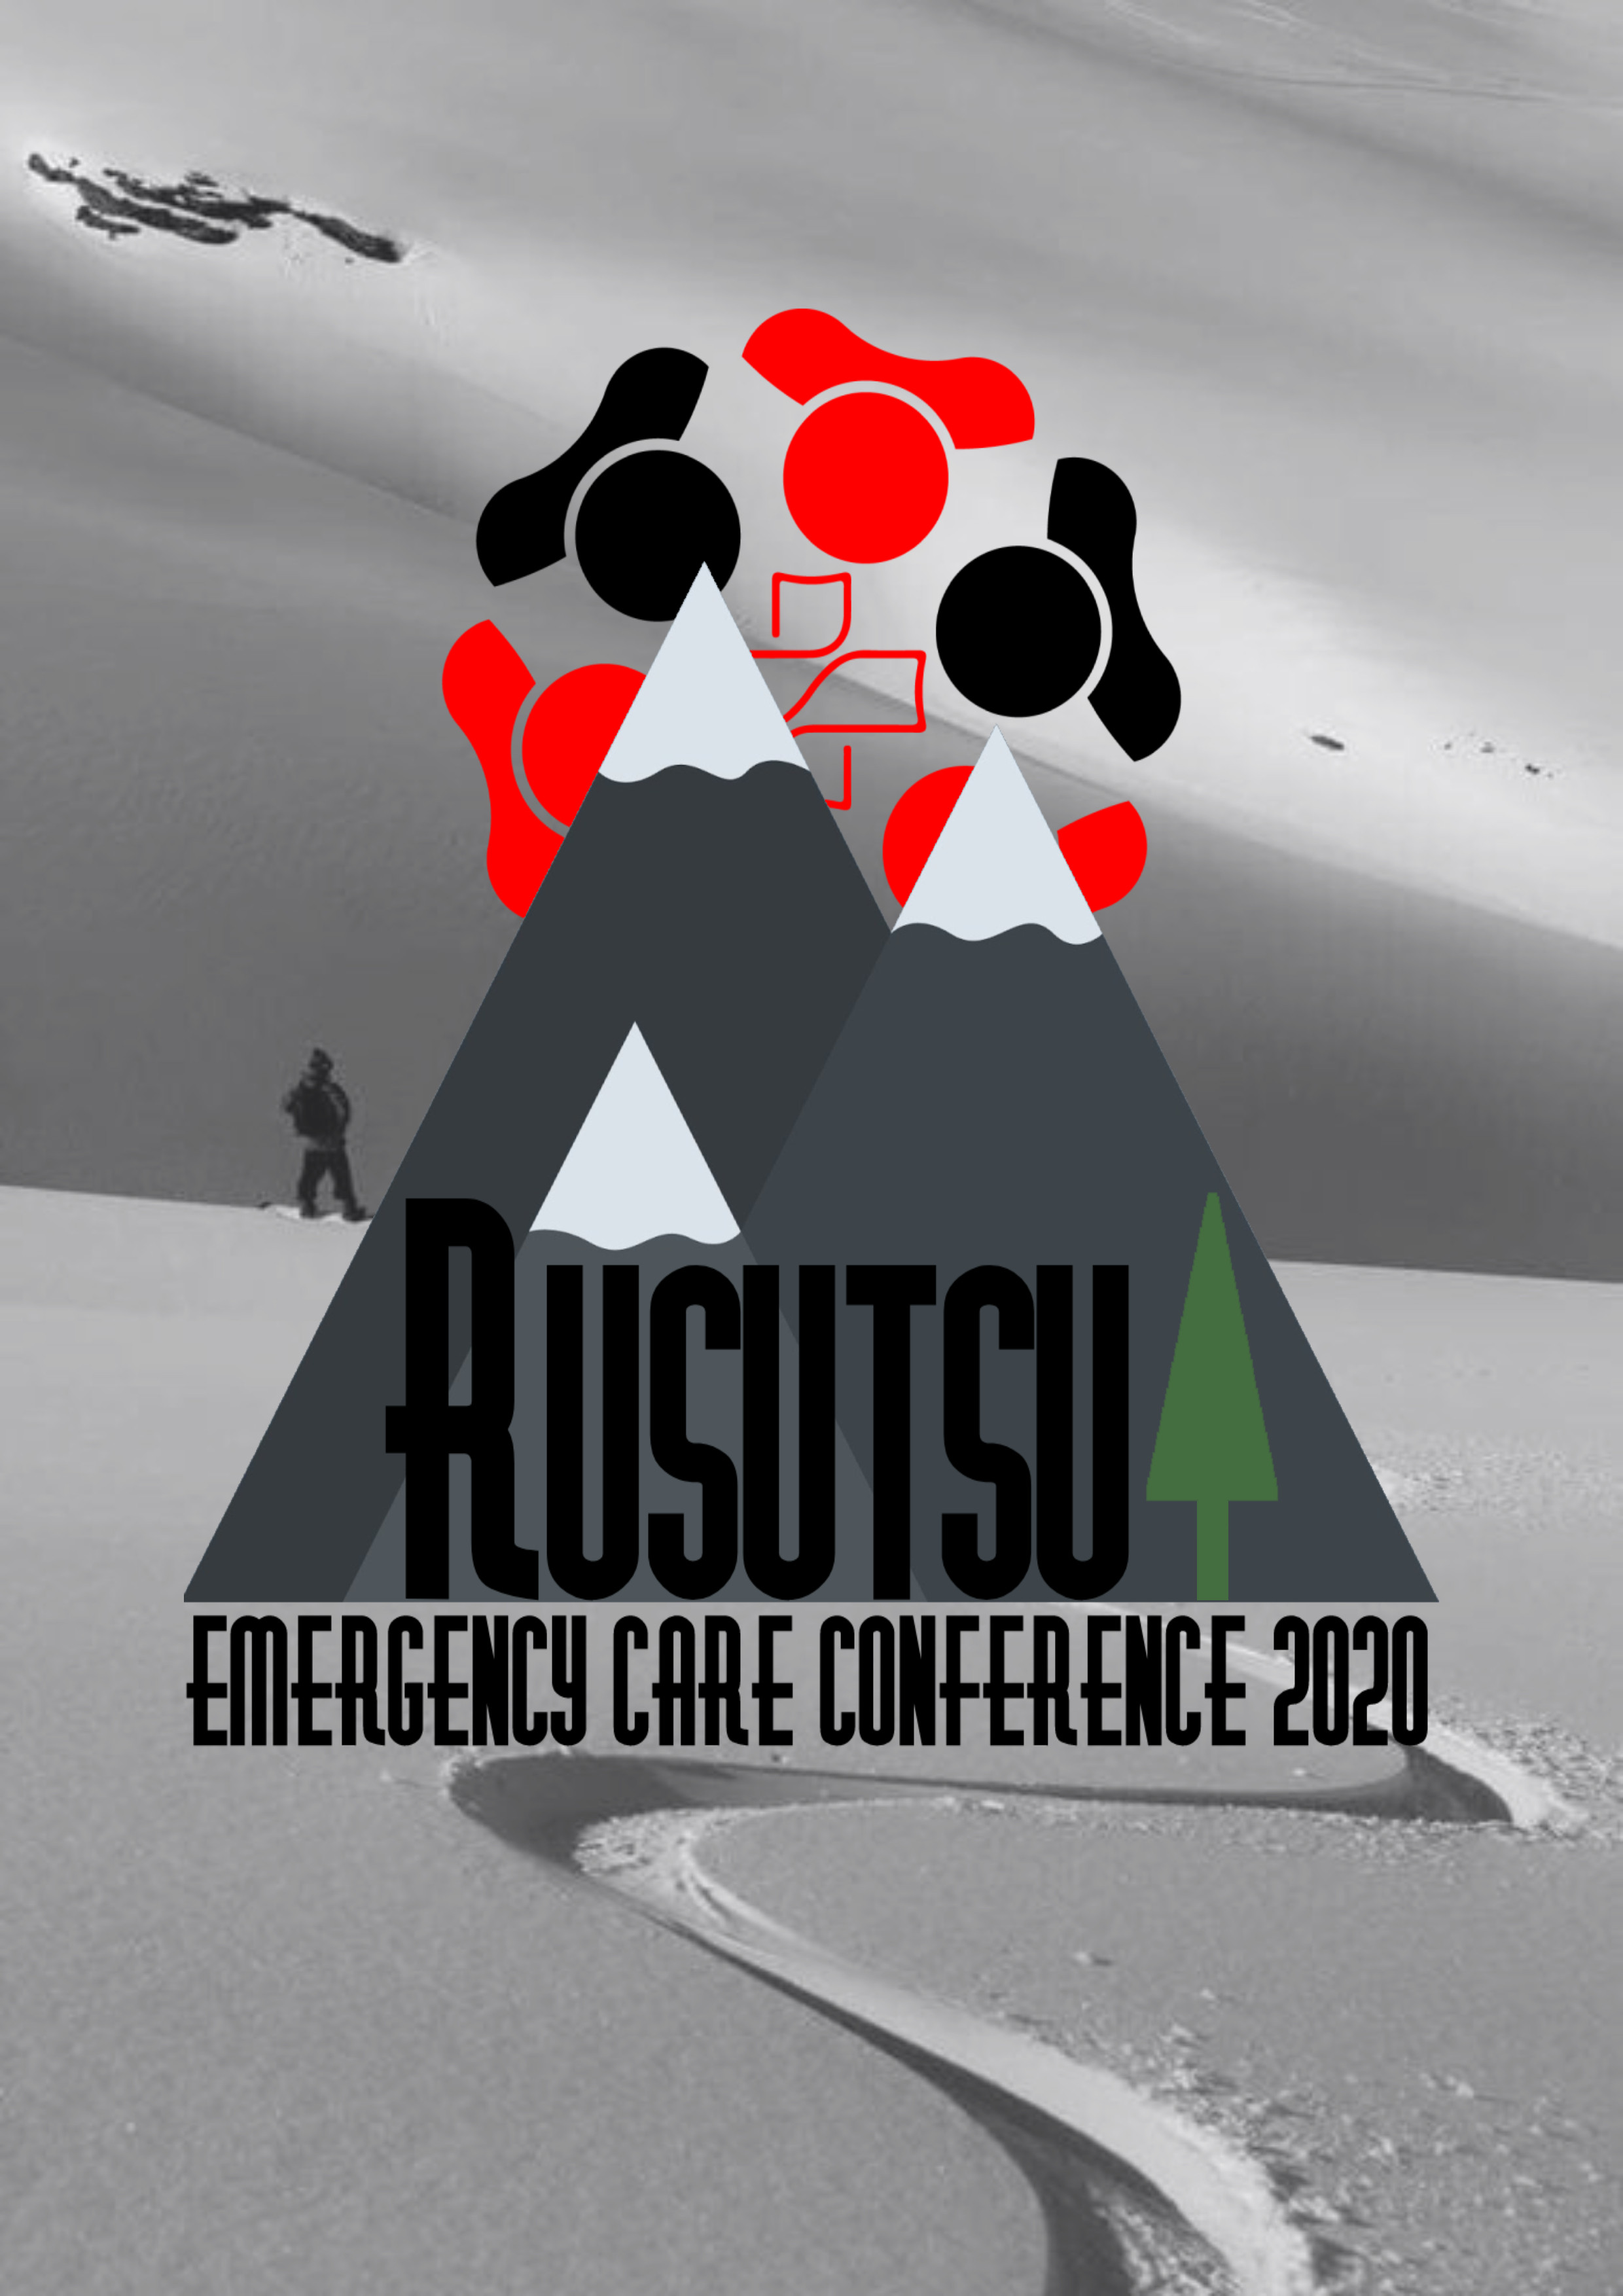 2020 RUSUTSU EMERGENCY CARE CONFERENCE